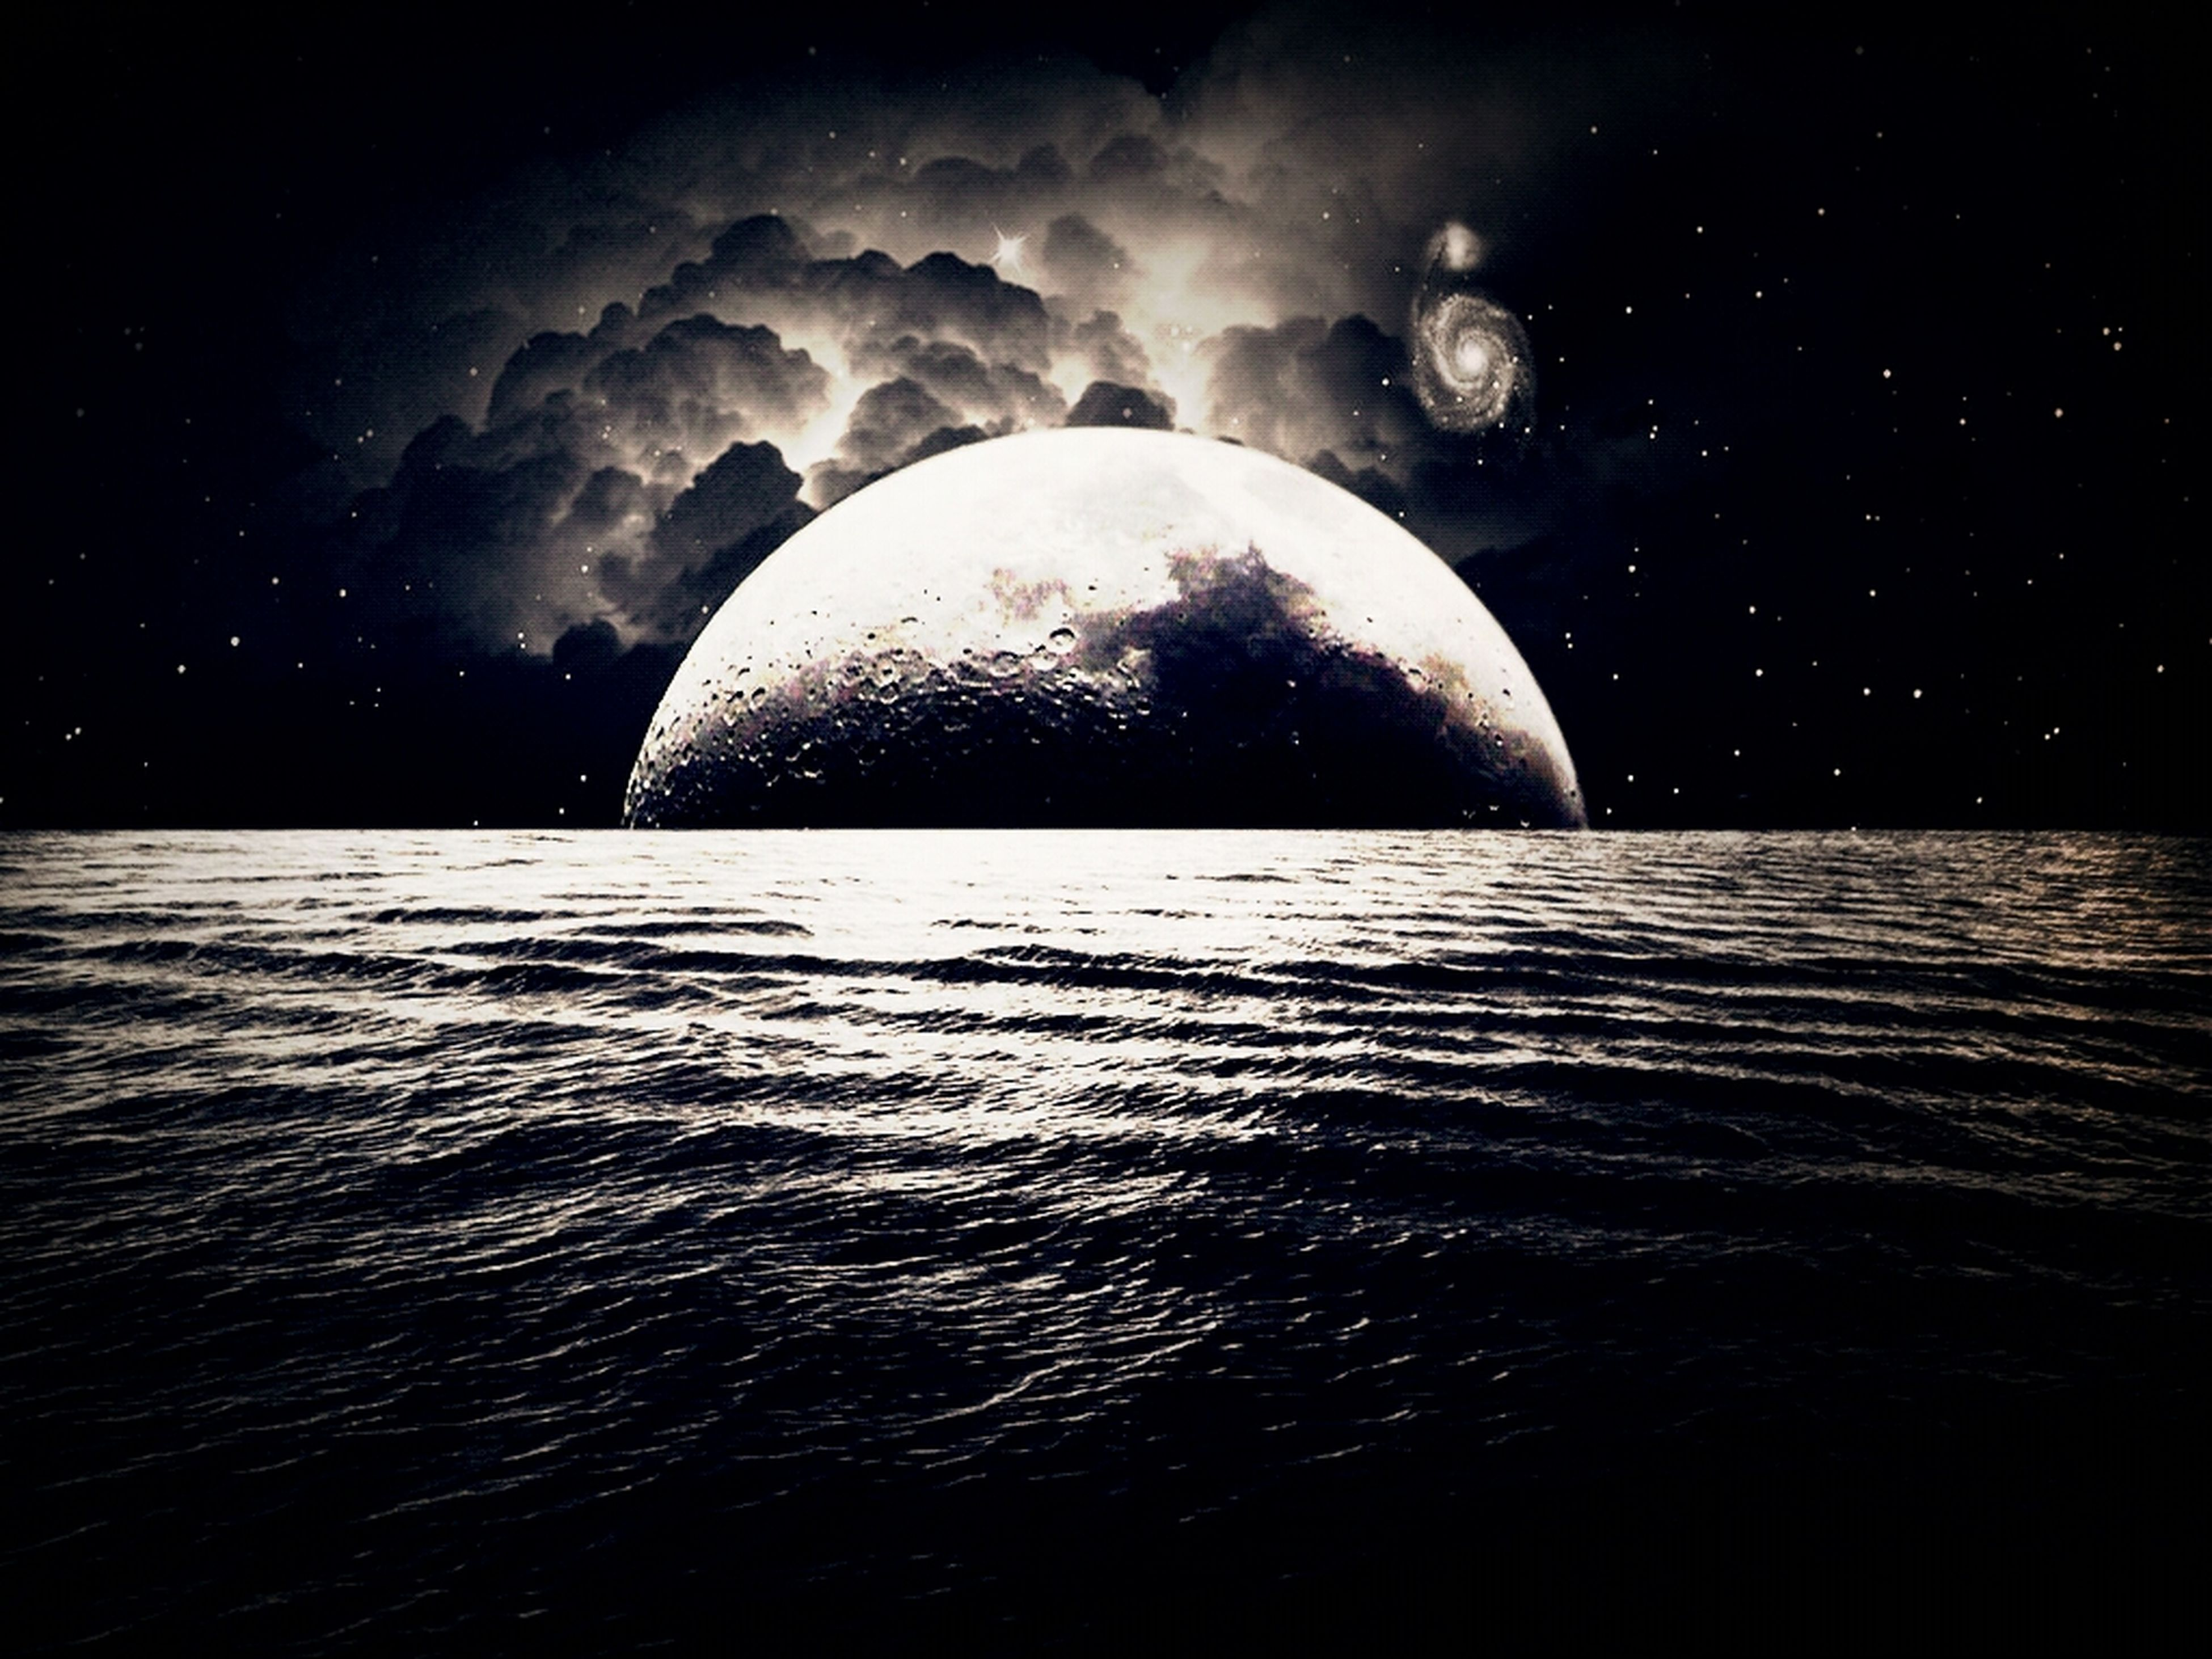 water, night, tranquil scene, scenics, reflection, tranquility, astronomy, circle, beauty in nature, nature, dark, waterfront, sea, rippled, sky, no people, outdoors, idyllic, moon, illuminated